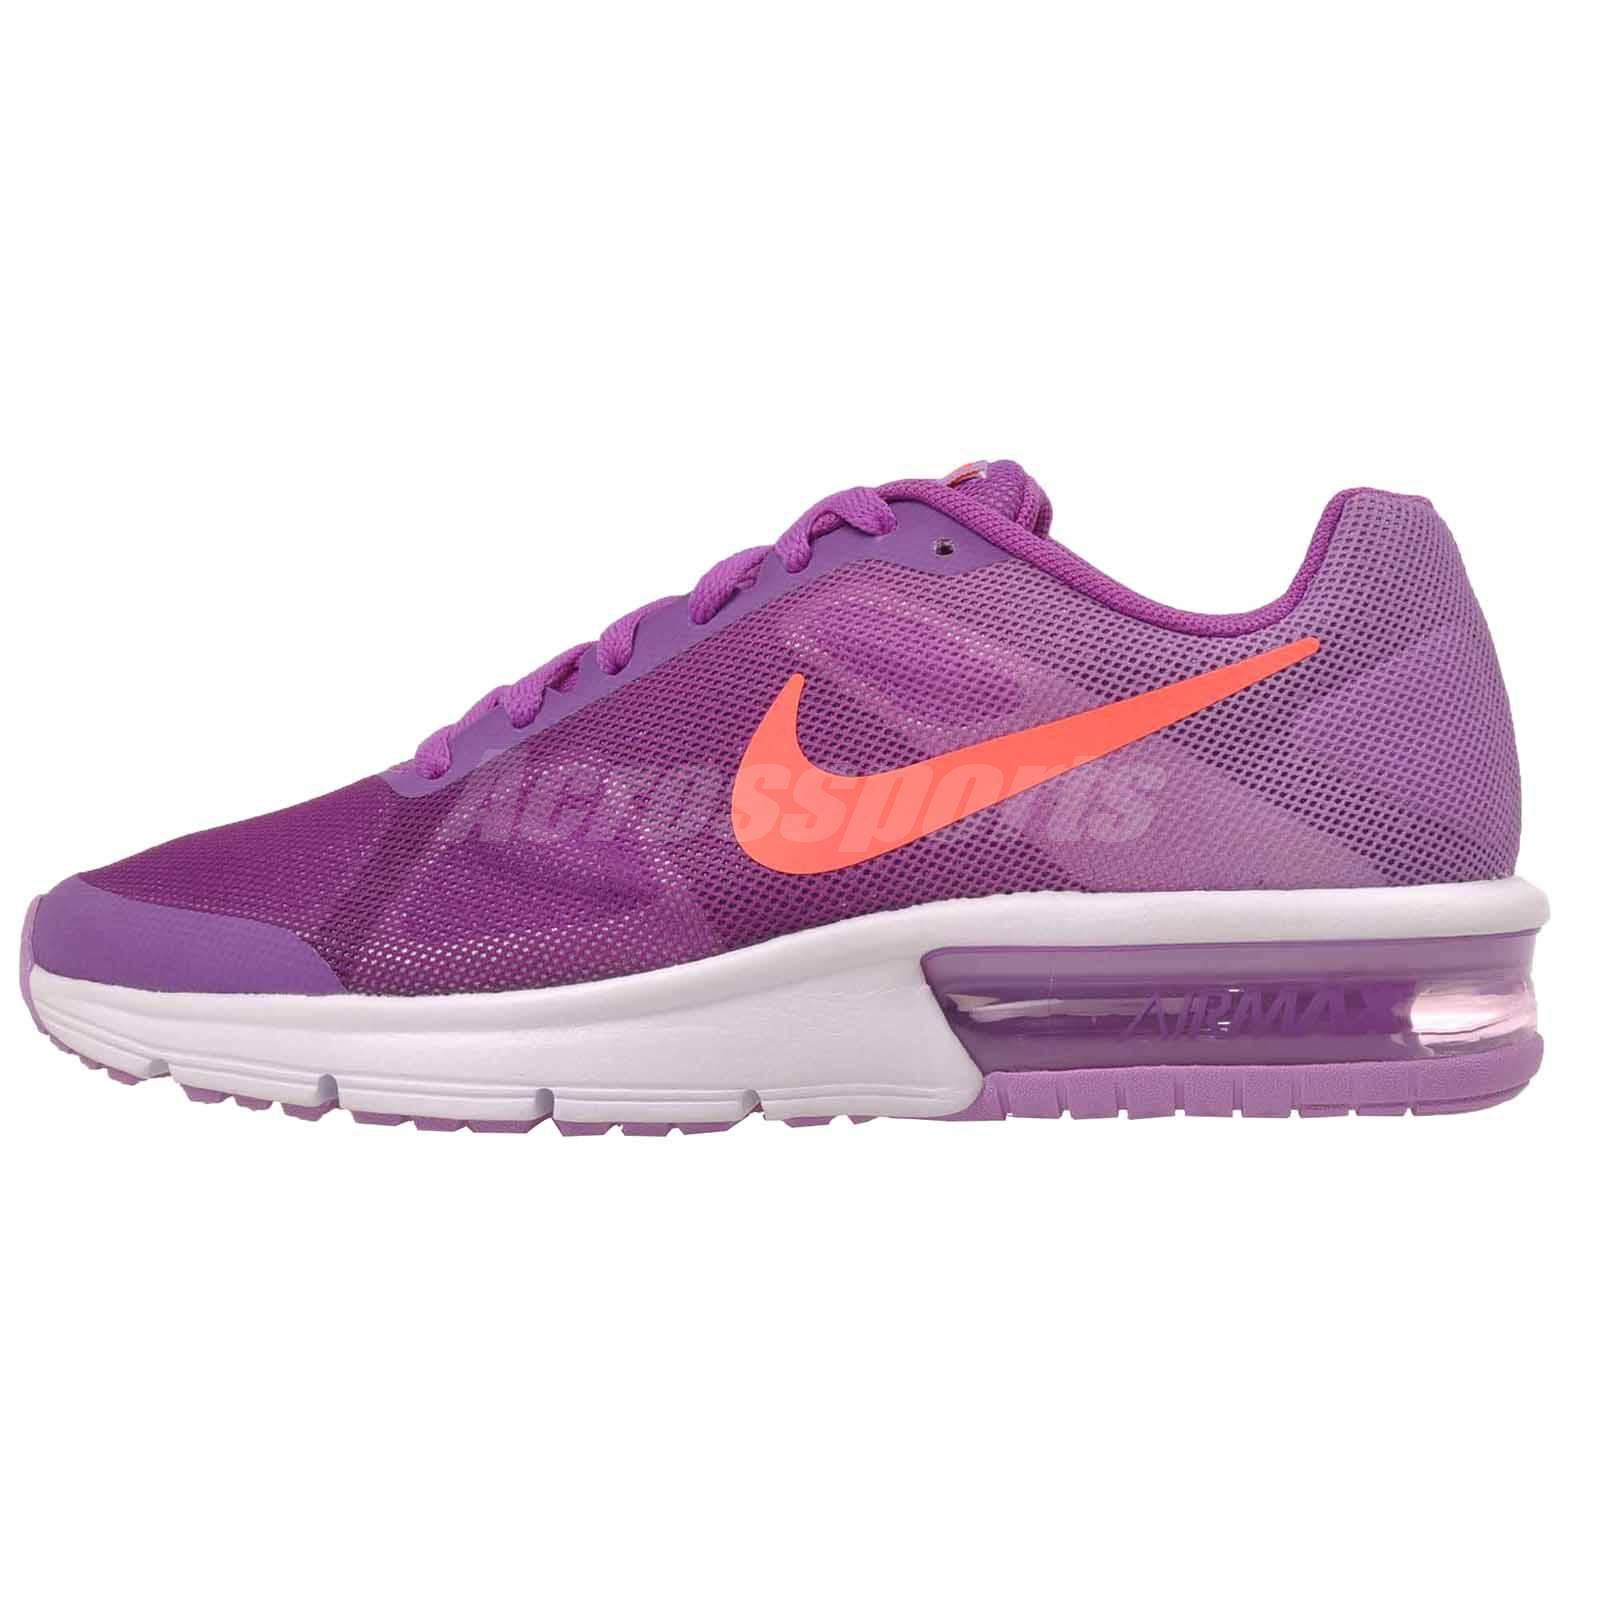 reputable site 583f9 44430 Nike Air Max Sequent GS Running Kids Youth Shoes Vivid Purple 724984-501